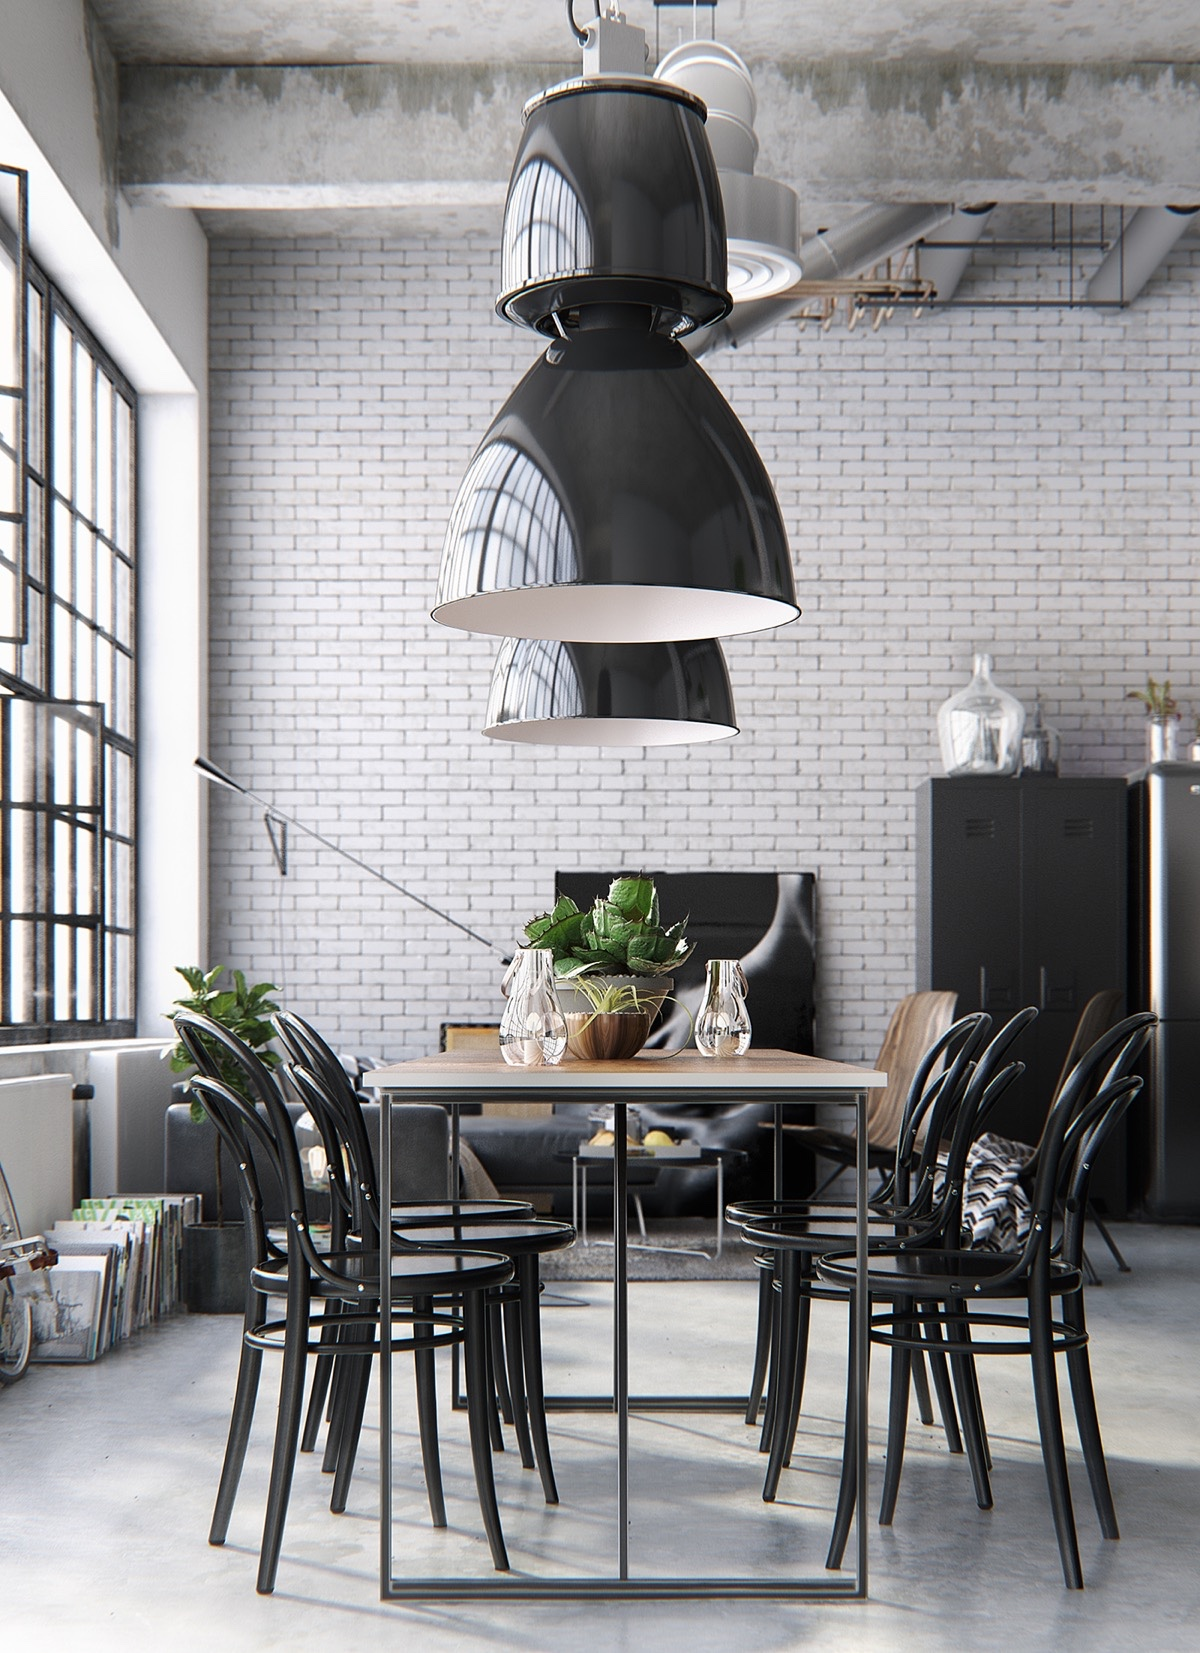 Black Framed Windows Large Pendant Lights Monochrome Dining Area - 30 black white dining rooms that work their monochrome magic